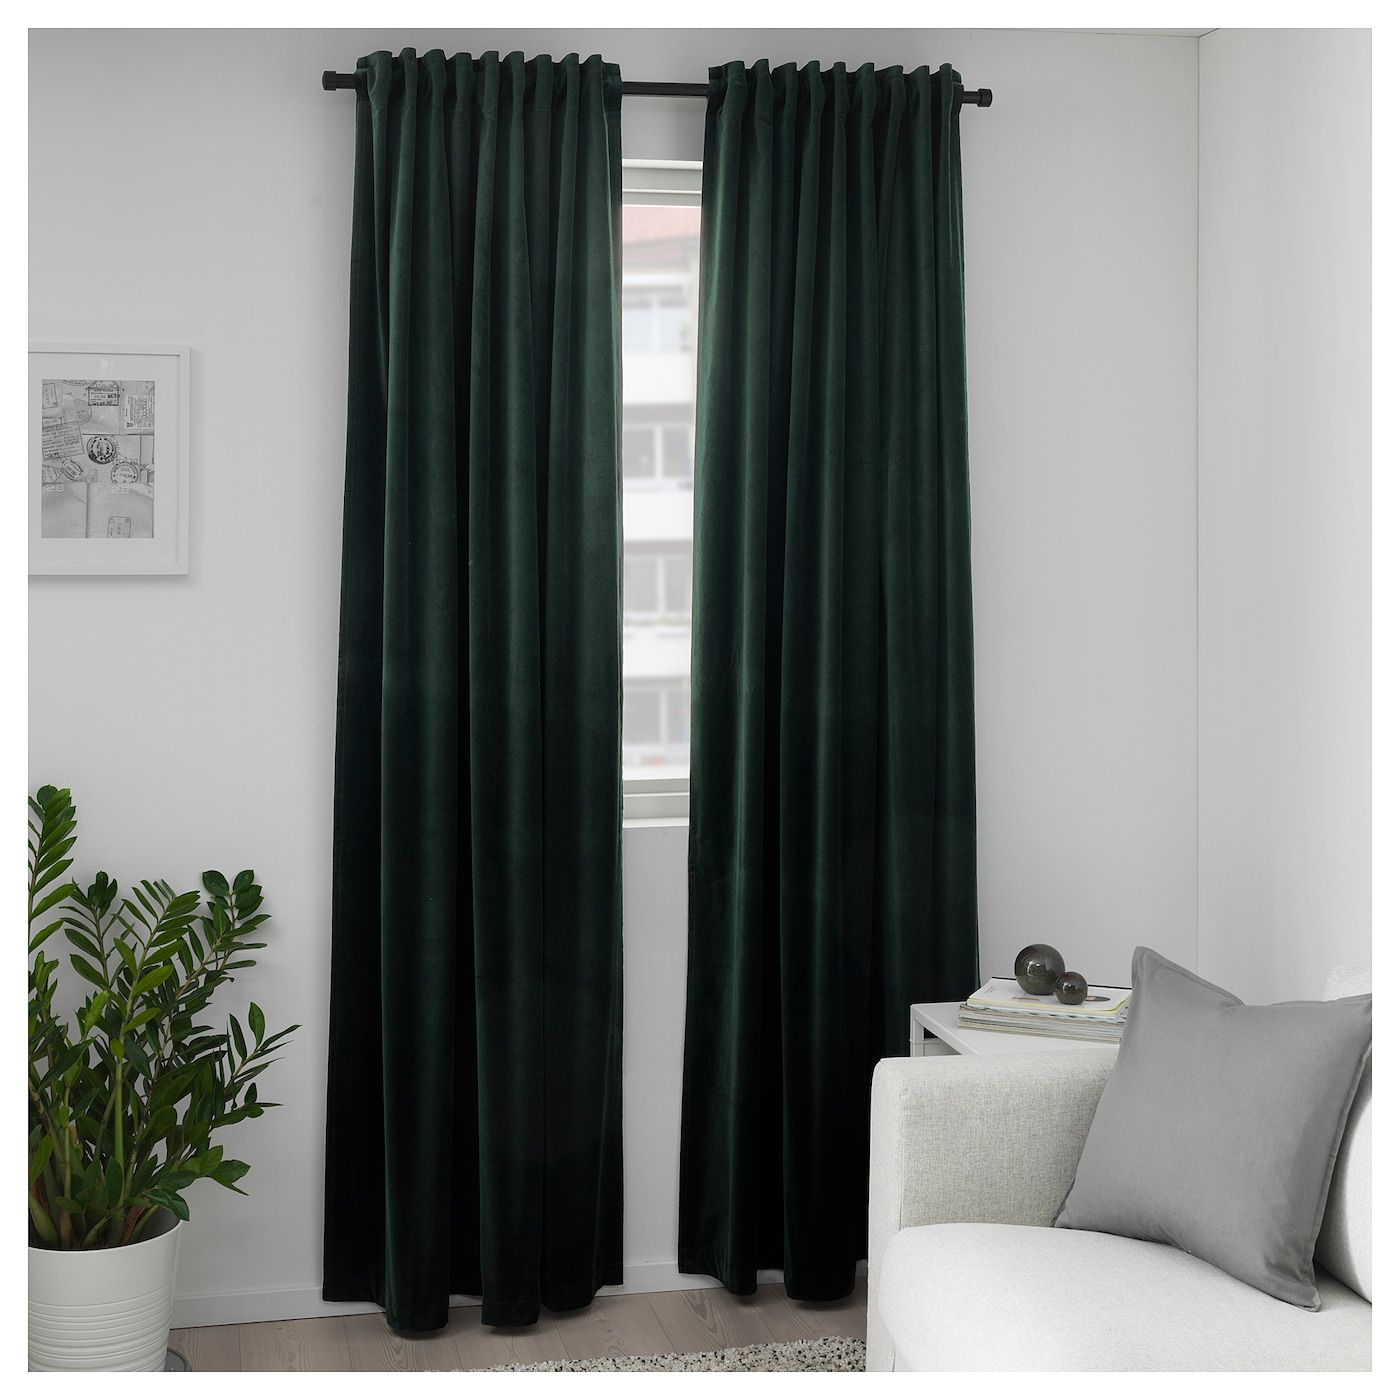 Sanela Room Darkening Curtains 1 Pair Dark Green Ikea Room Darkening Curtains Green Curtains Green Curtains Bedroom